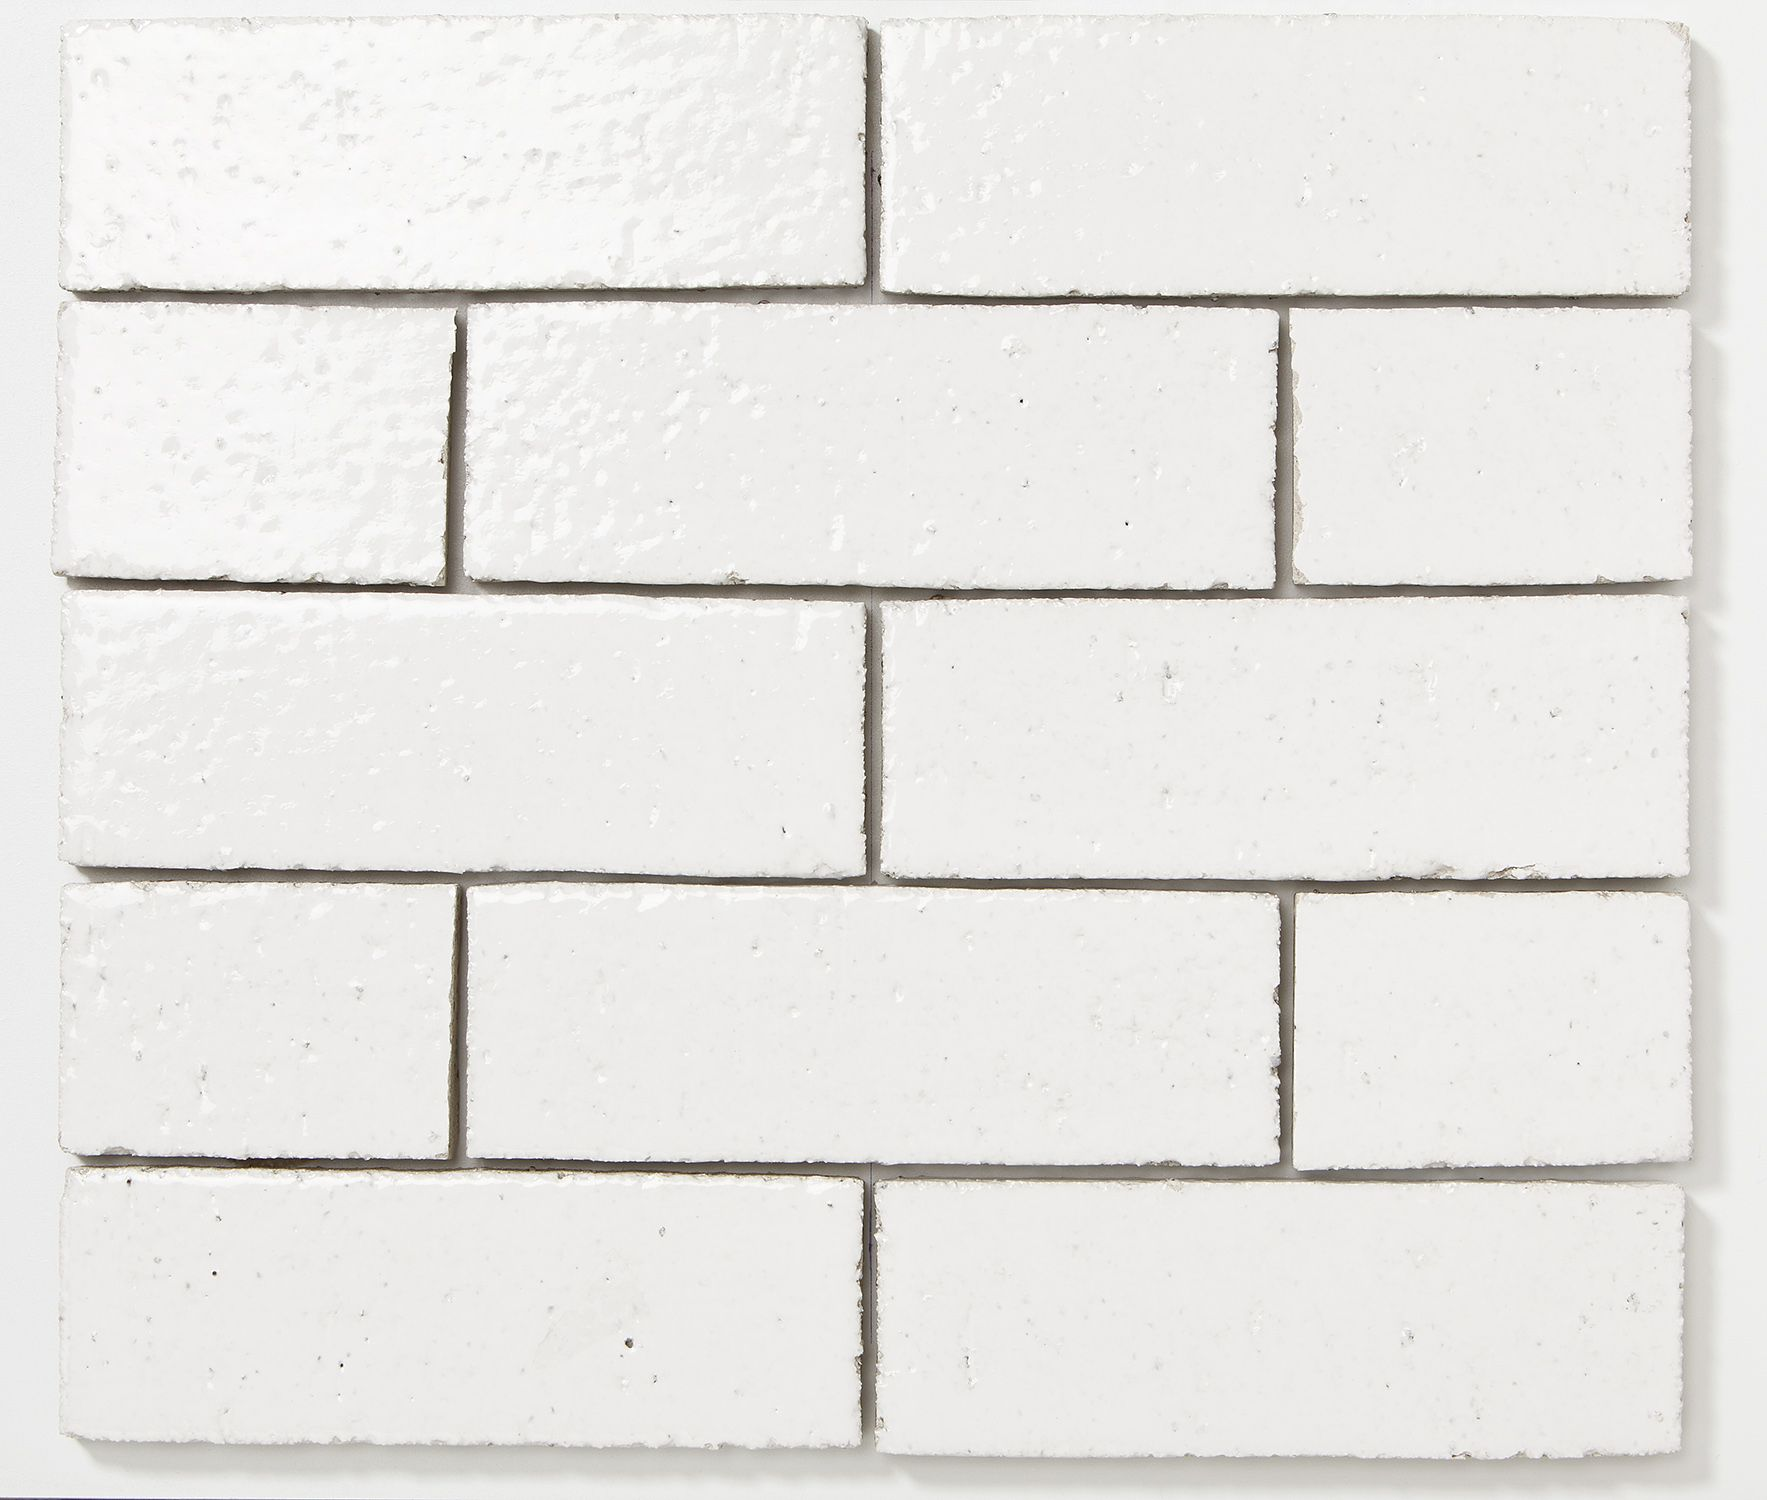 Accent Tile Thinner Than Wall Tile: Glazed Slimbrick Designer Brick Tiles Add Unique Character